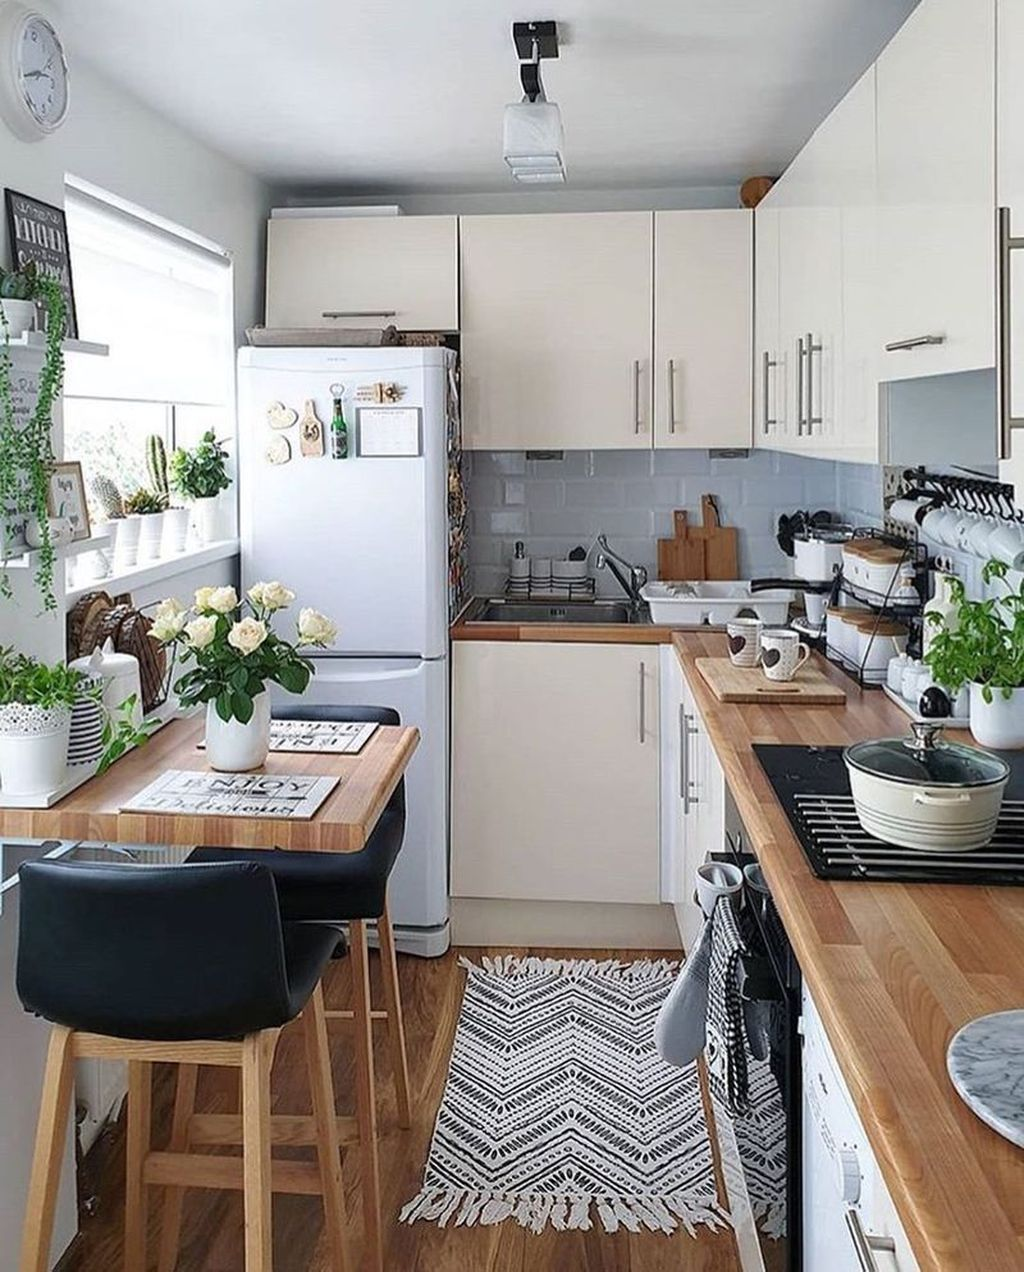 9 Rustic Apartment Kitchen Design Ideas To Try Asap   Small ...